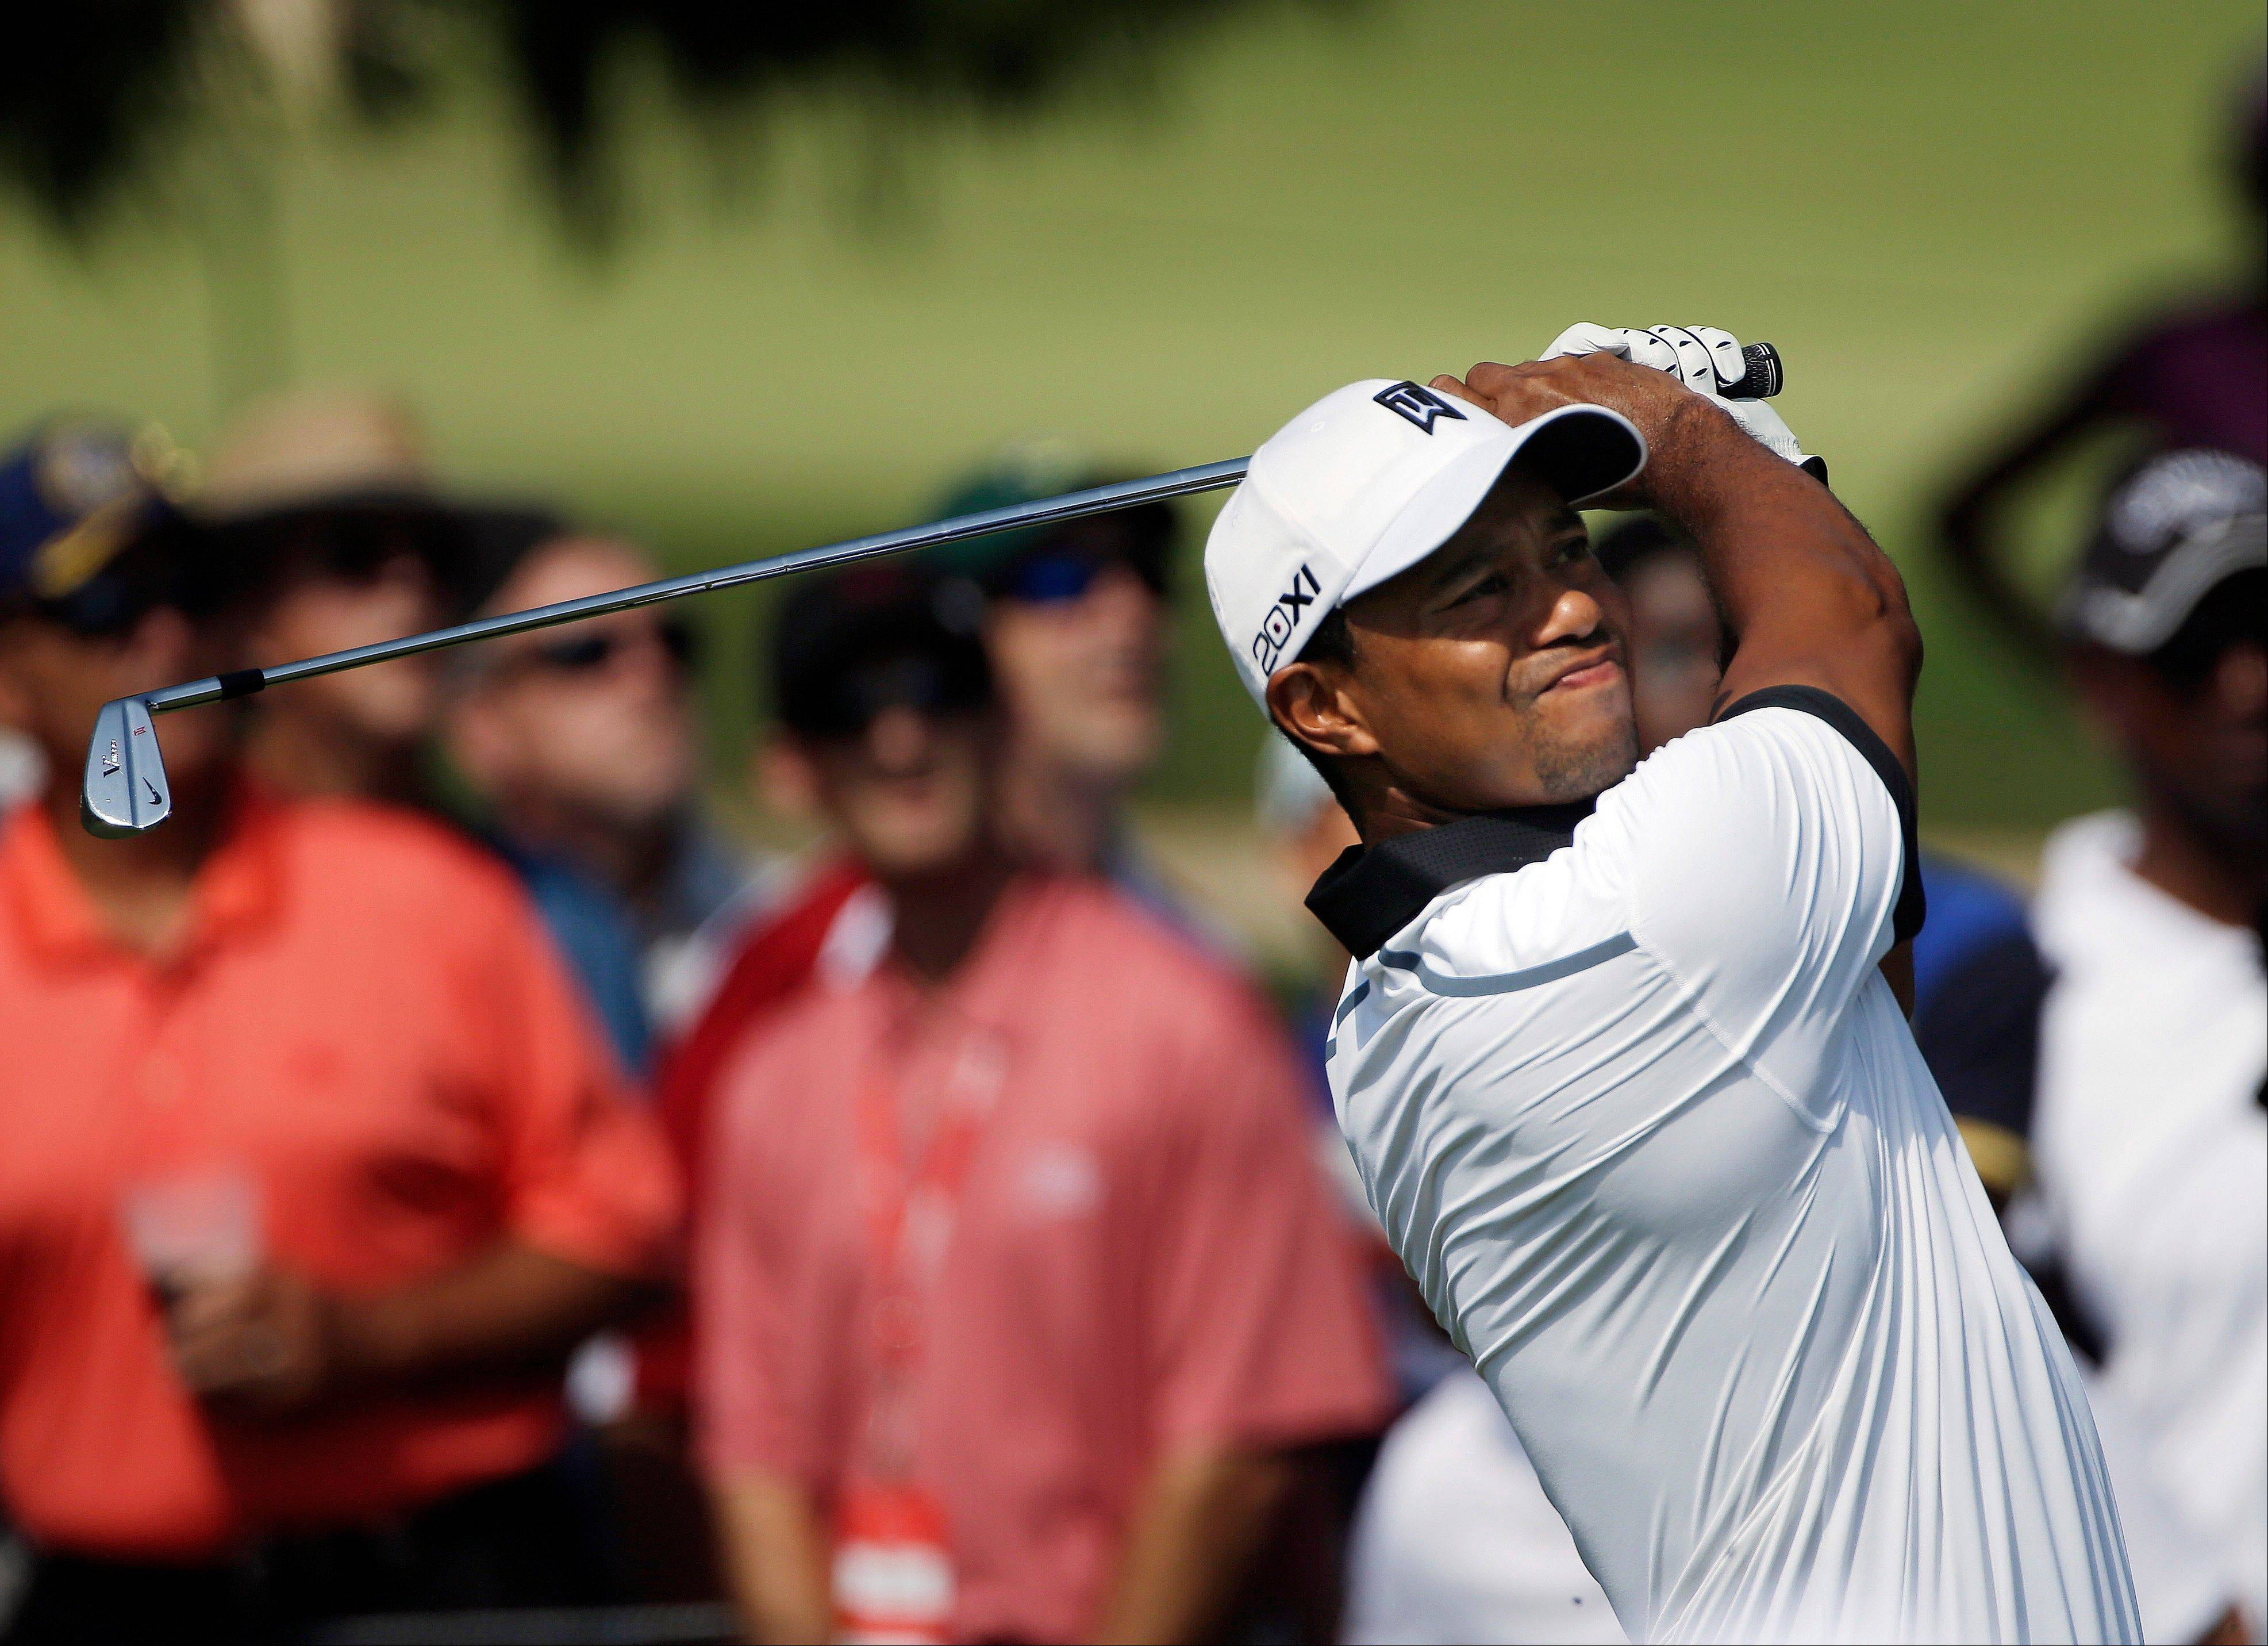 Nicklaus confident Woods will break majors mark